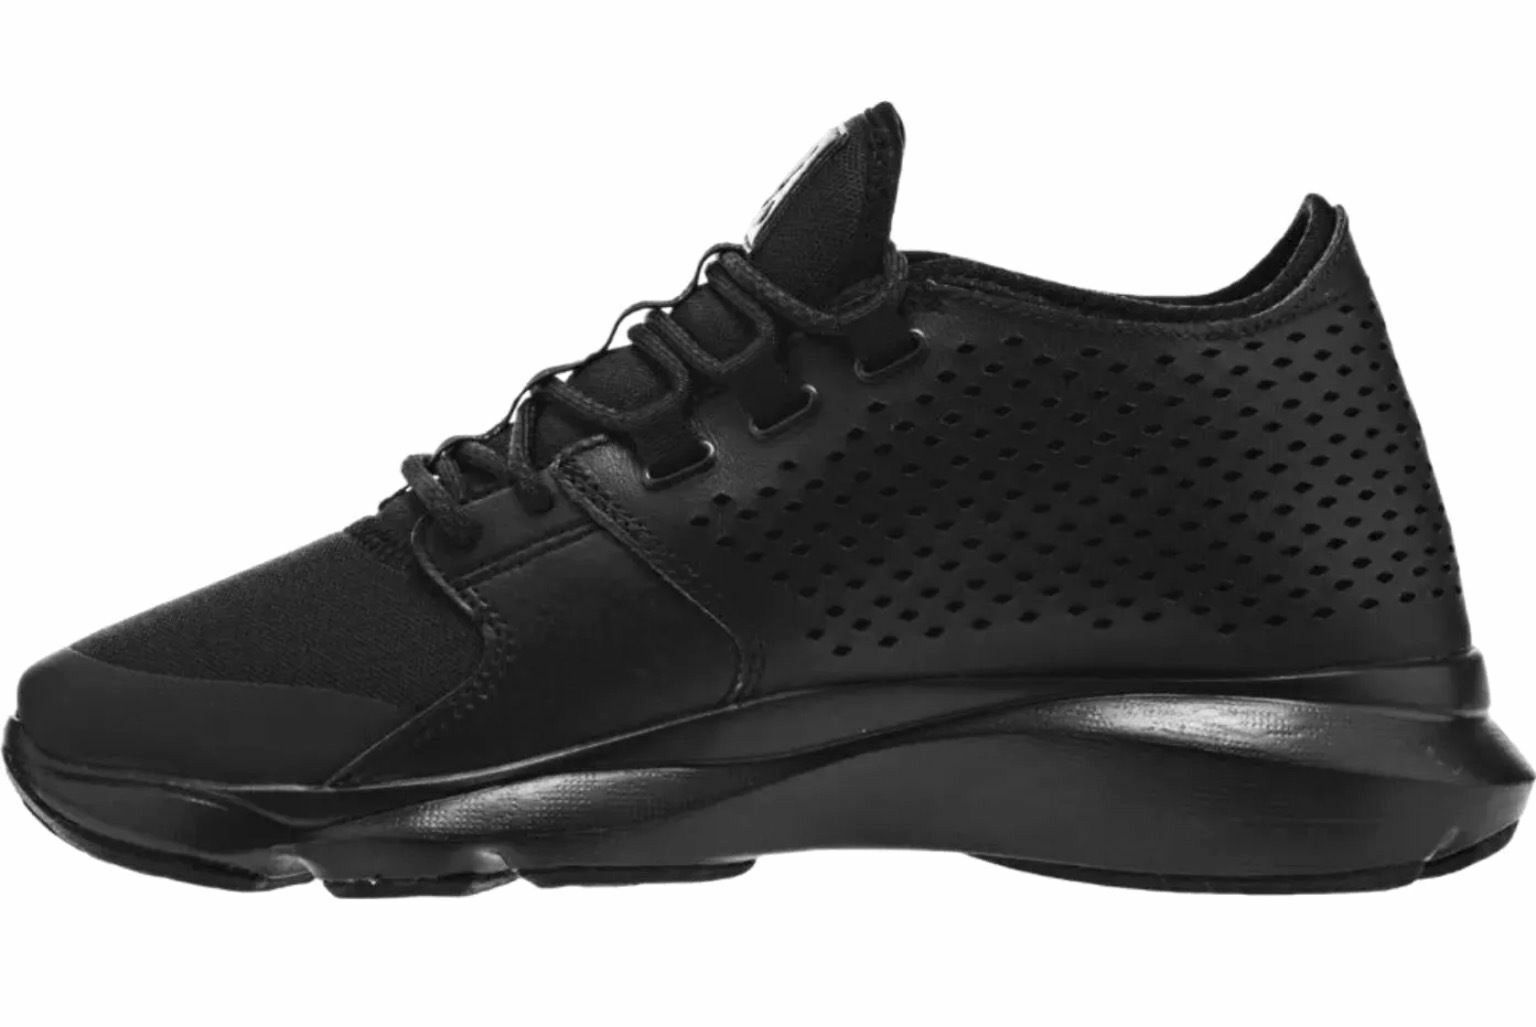 NIKE JORDAN FLOW ZOOM TRAINER BASKETBALL MEN SHOES BLACK 833969-010 SIZE 10 NEW Wild casual shoes